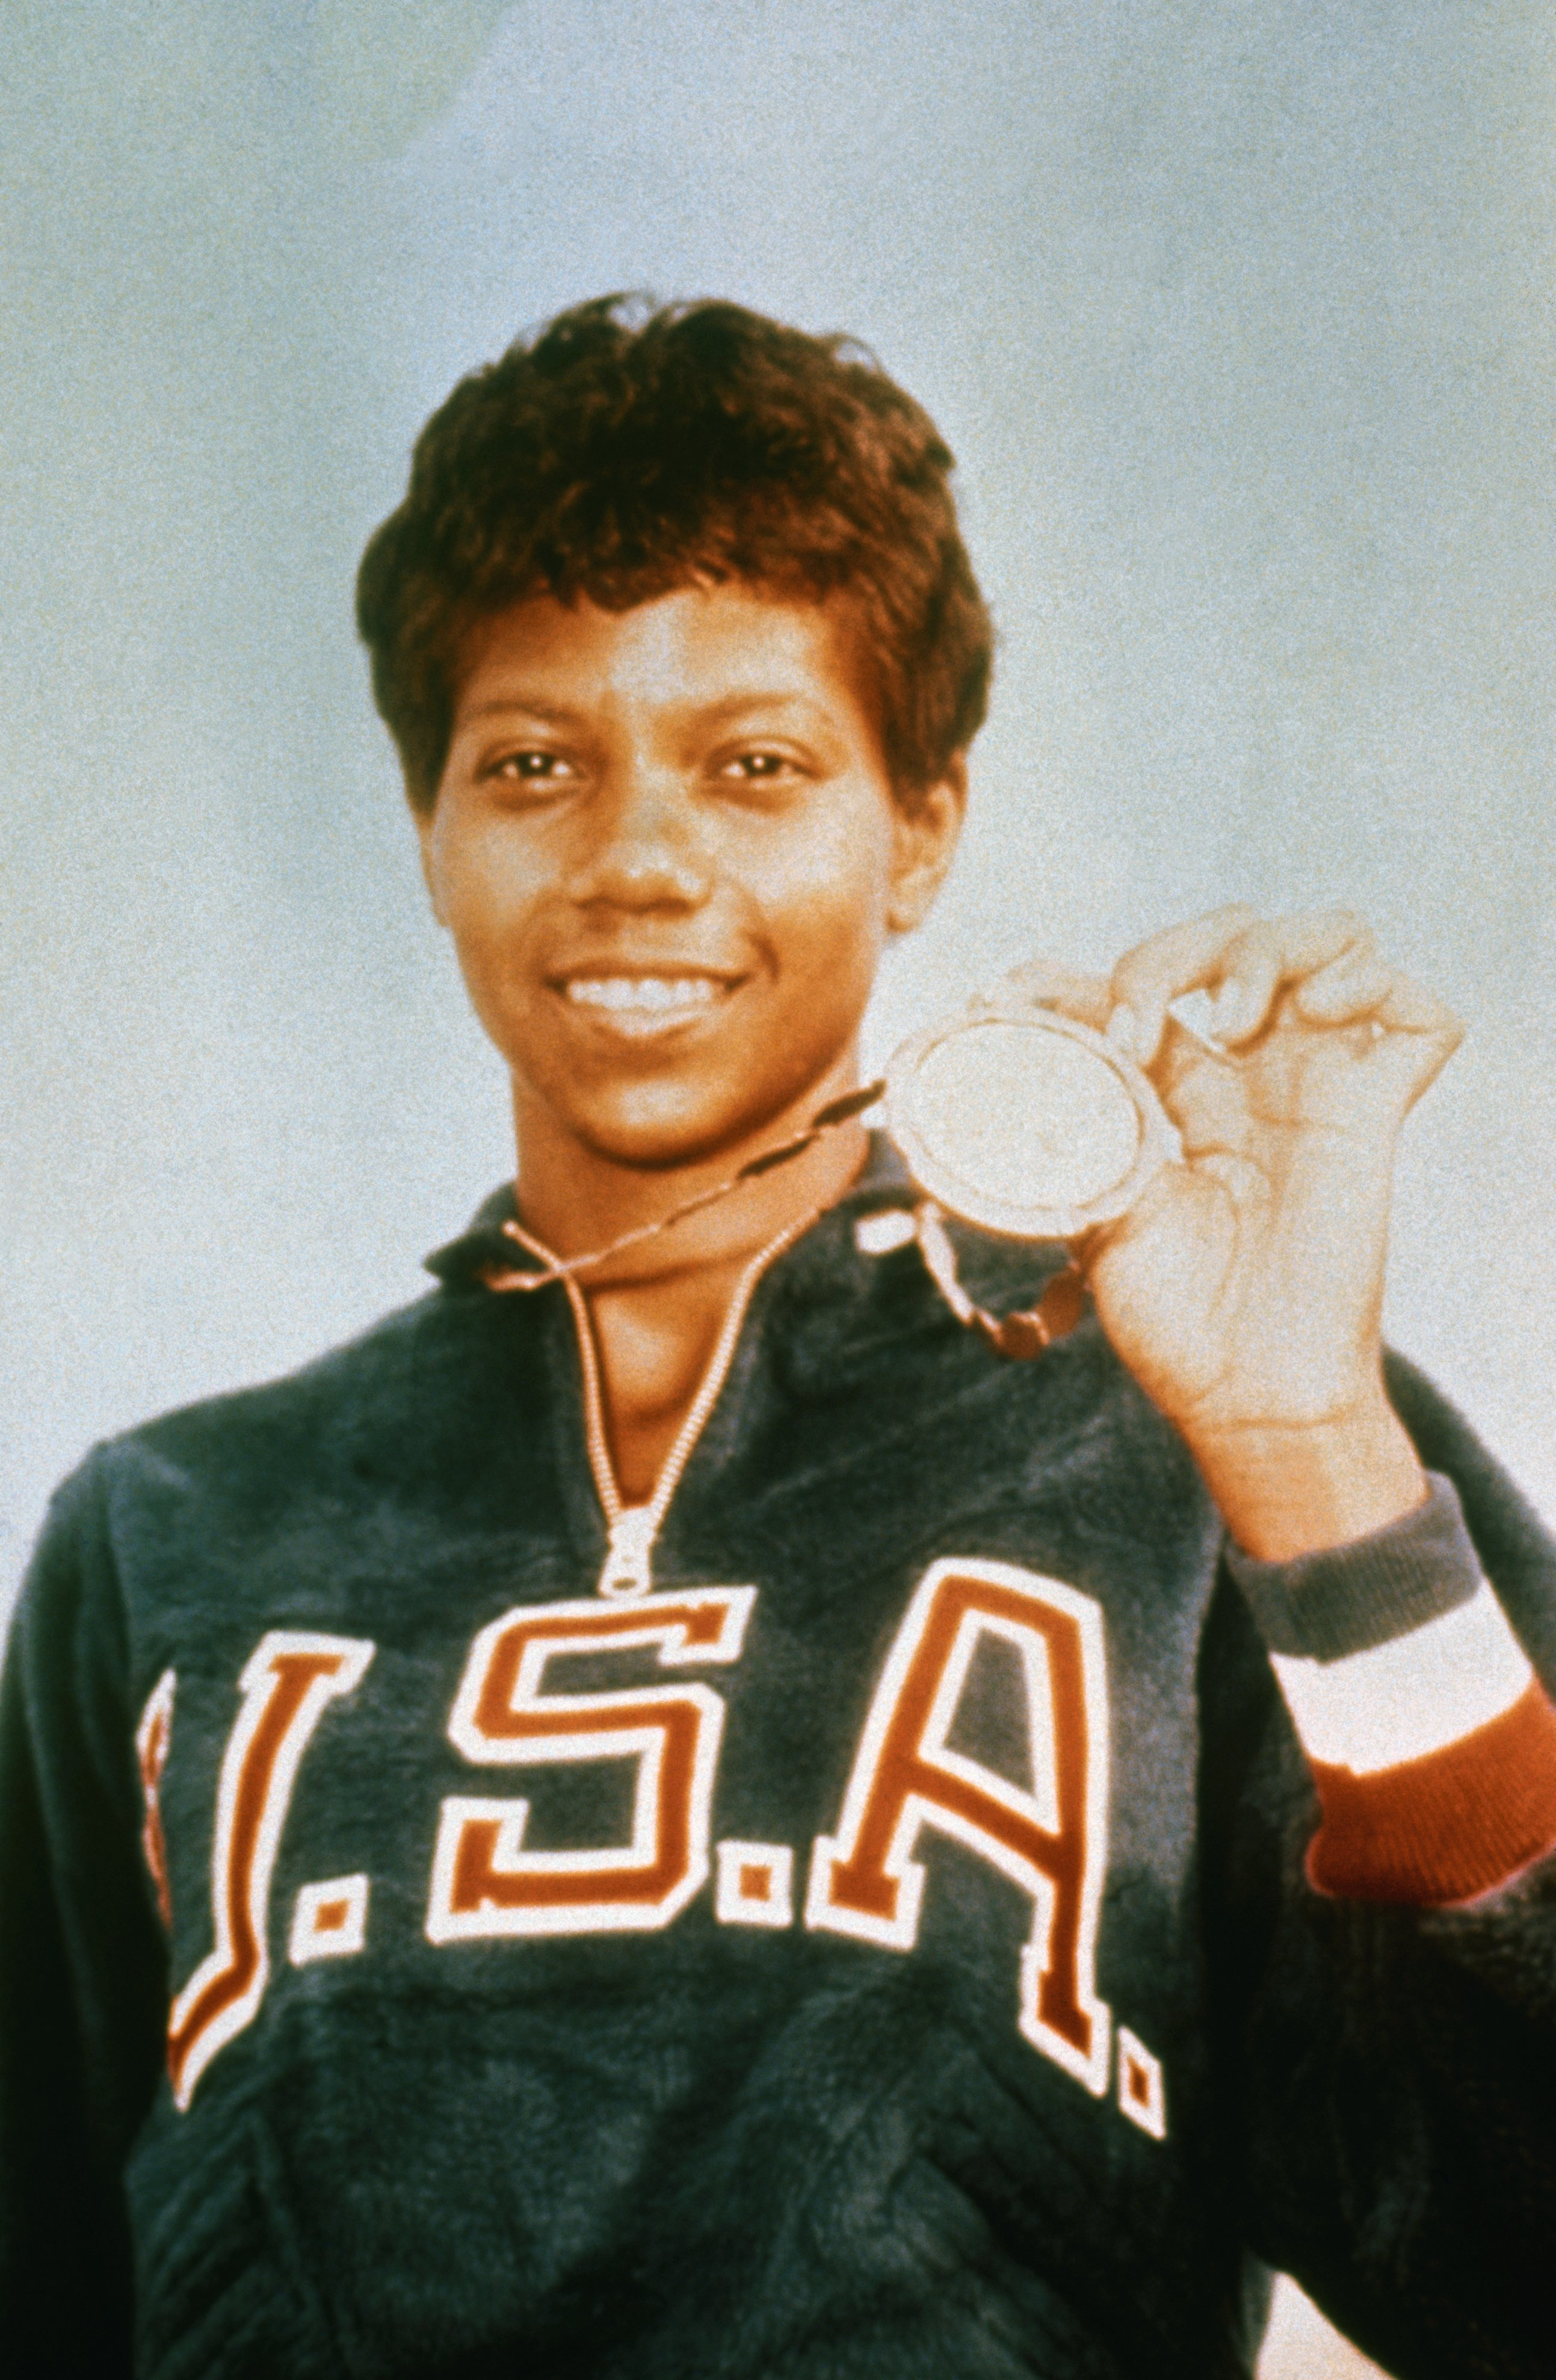 Wilma Rudolph with the gold medal she won for the 200-meter dash at the 1960 Olympics in Rome   Photo: Getty Images